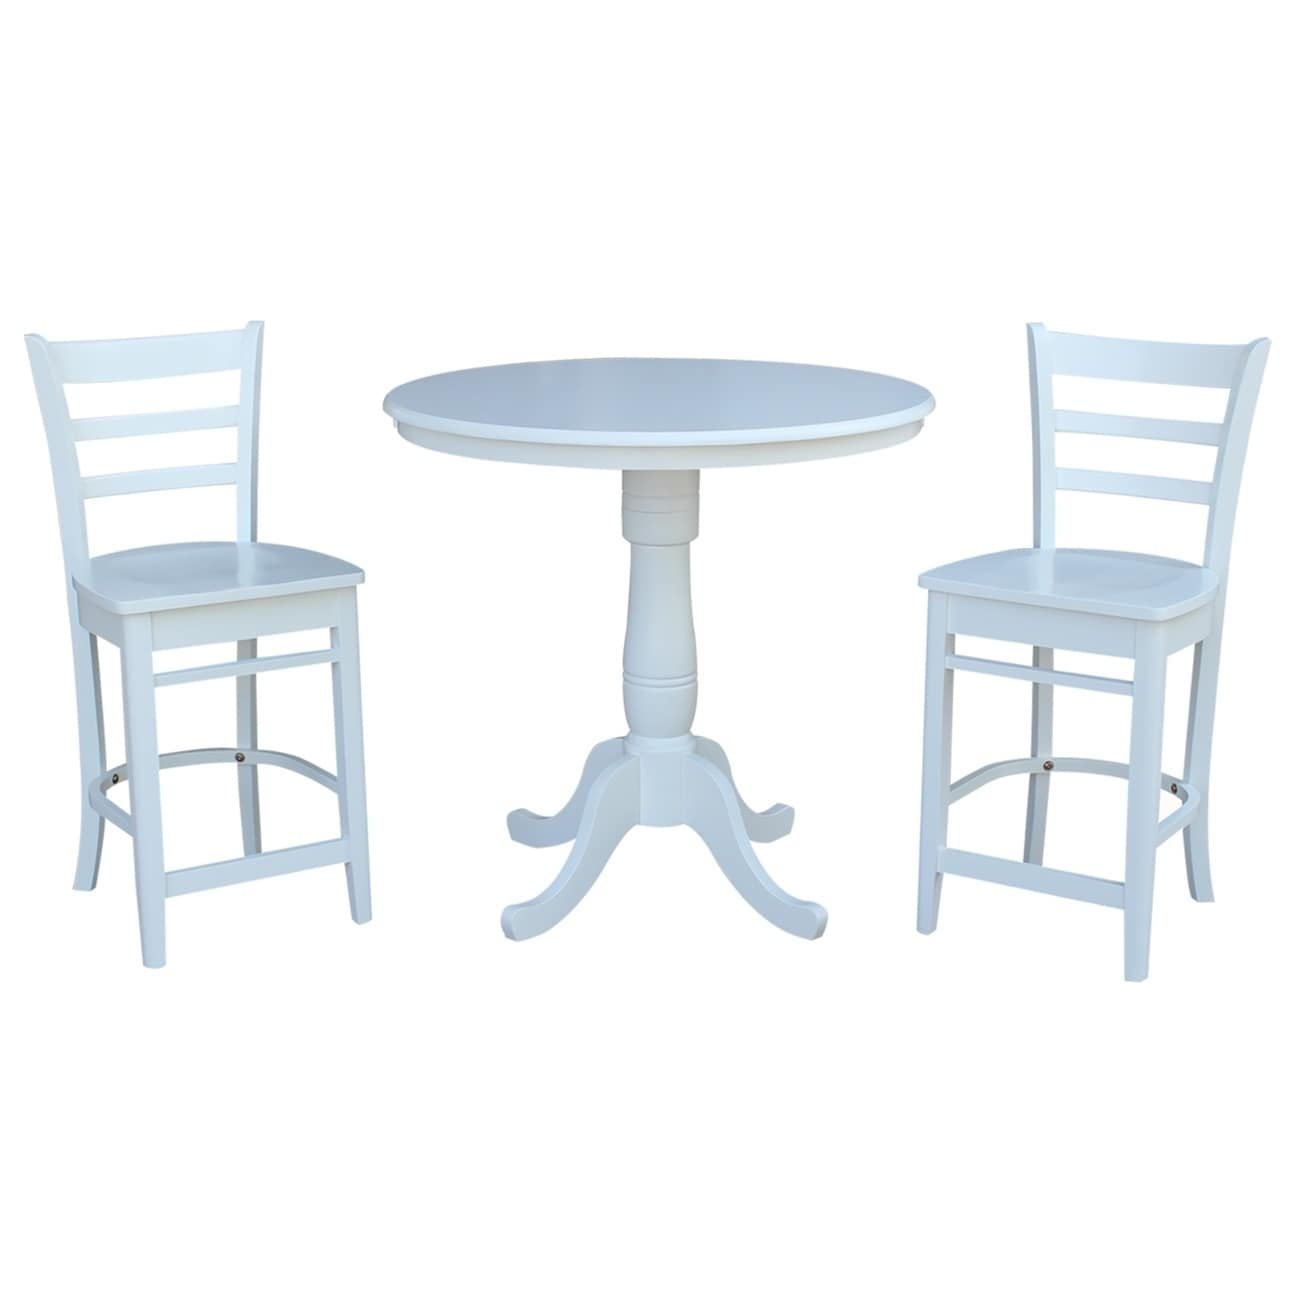 Outstanding 36 Round Pedestal Gathering Height Table With 2 X Back Counter Height Stools Beatyapartments Chair Design Images Beatyapartmentscom